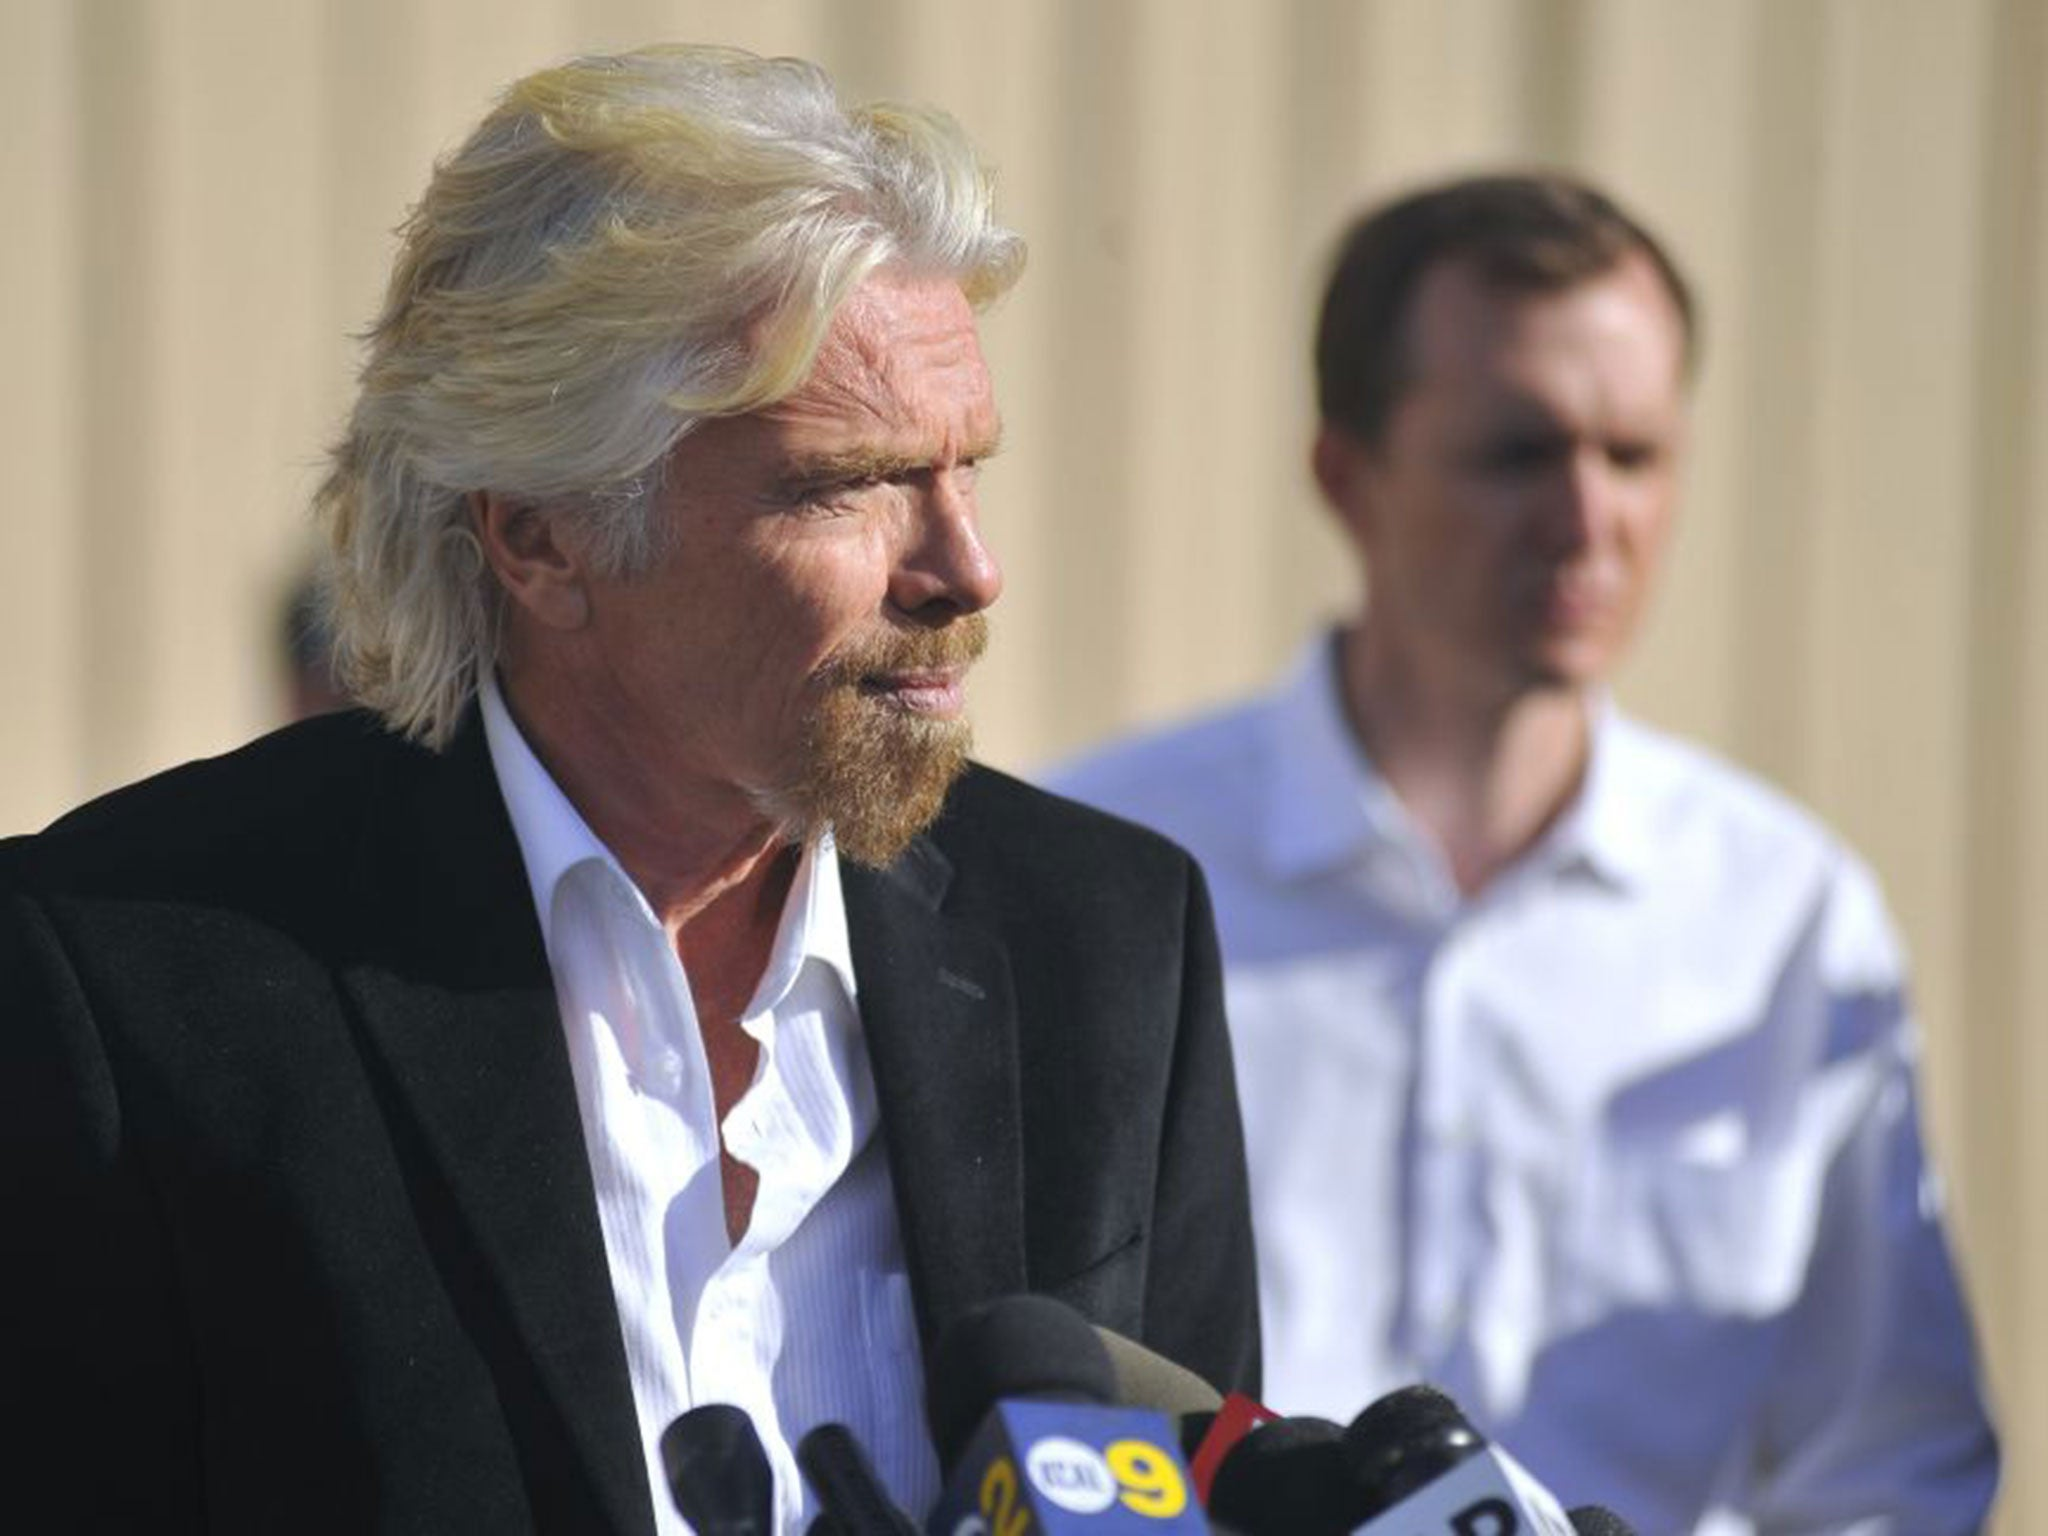 Richard Branson says the UN is about to call on governments around the world to decriminalise all drugs